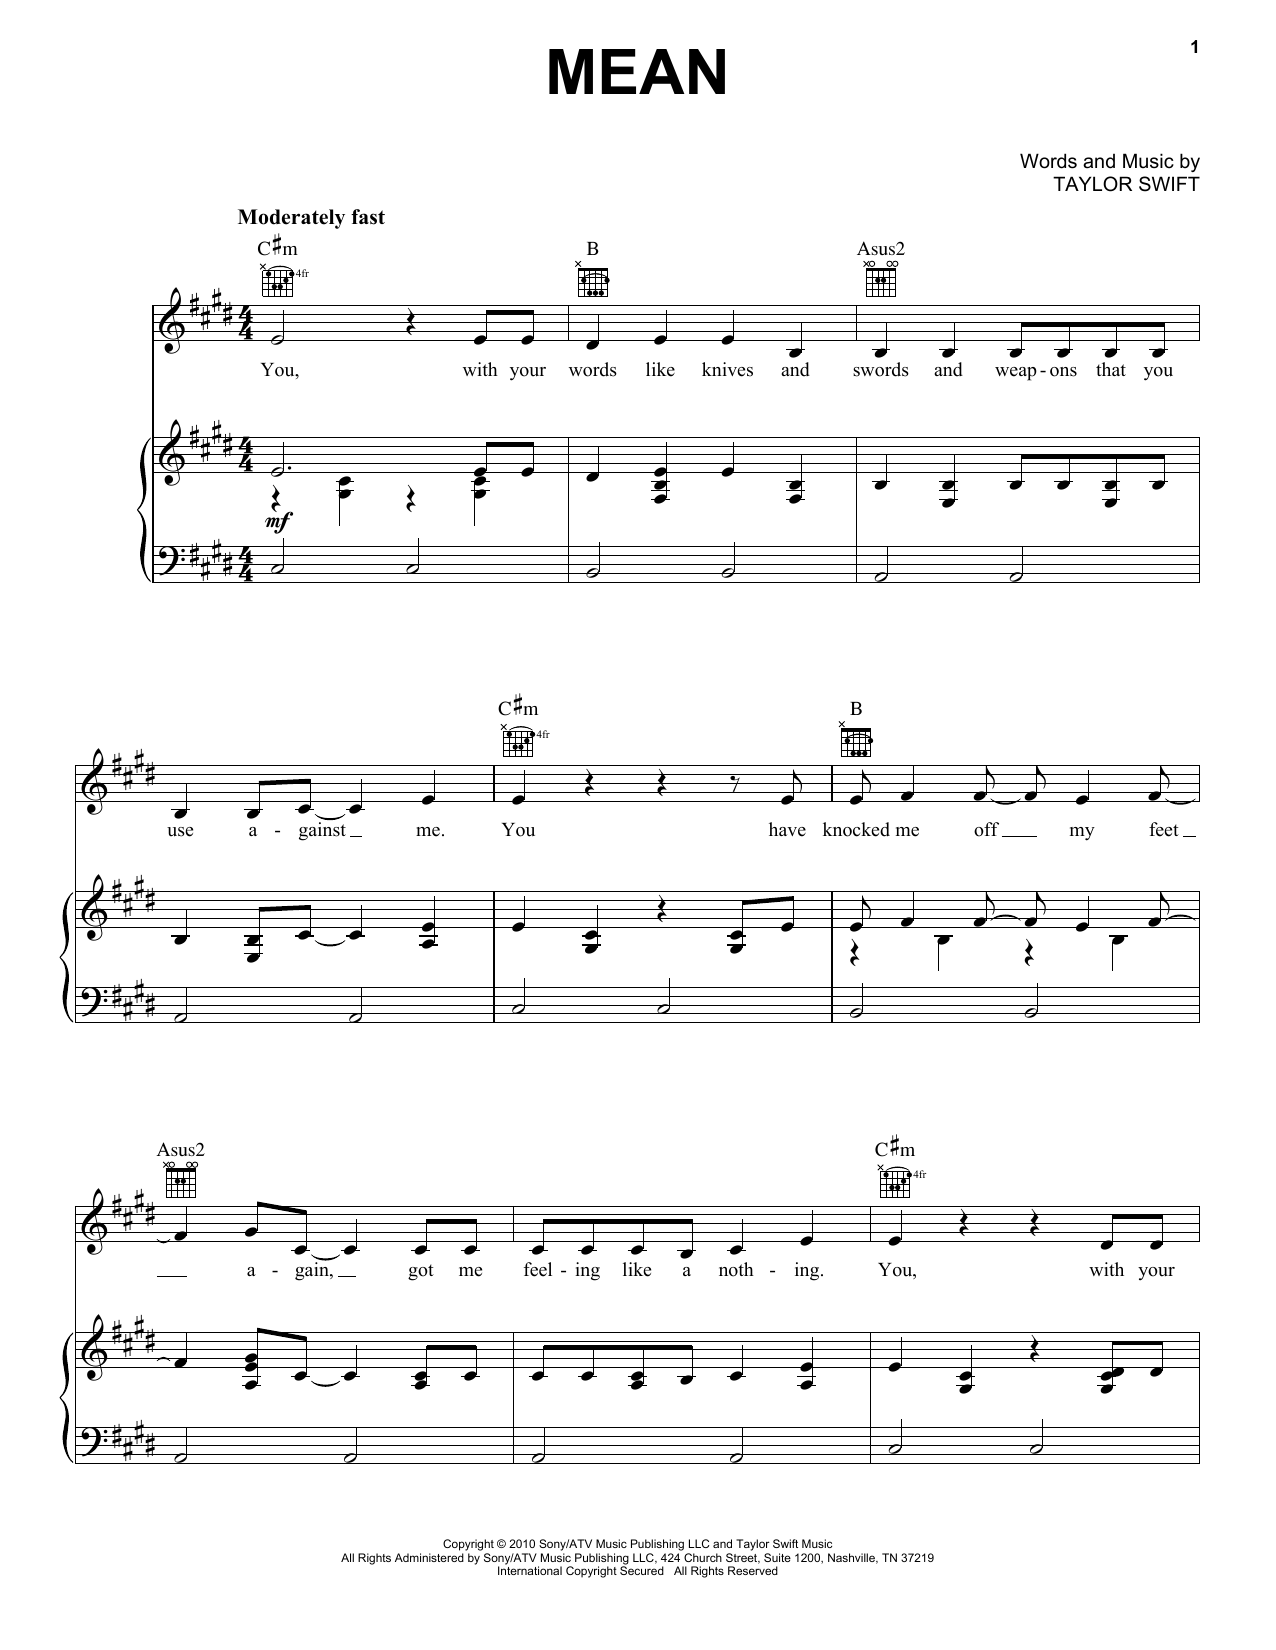 Taylor Swift Mean sheet music notes and chords